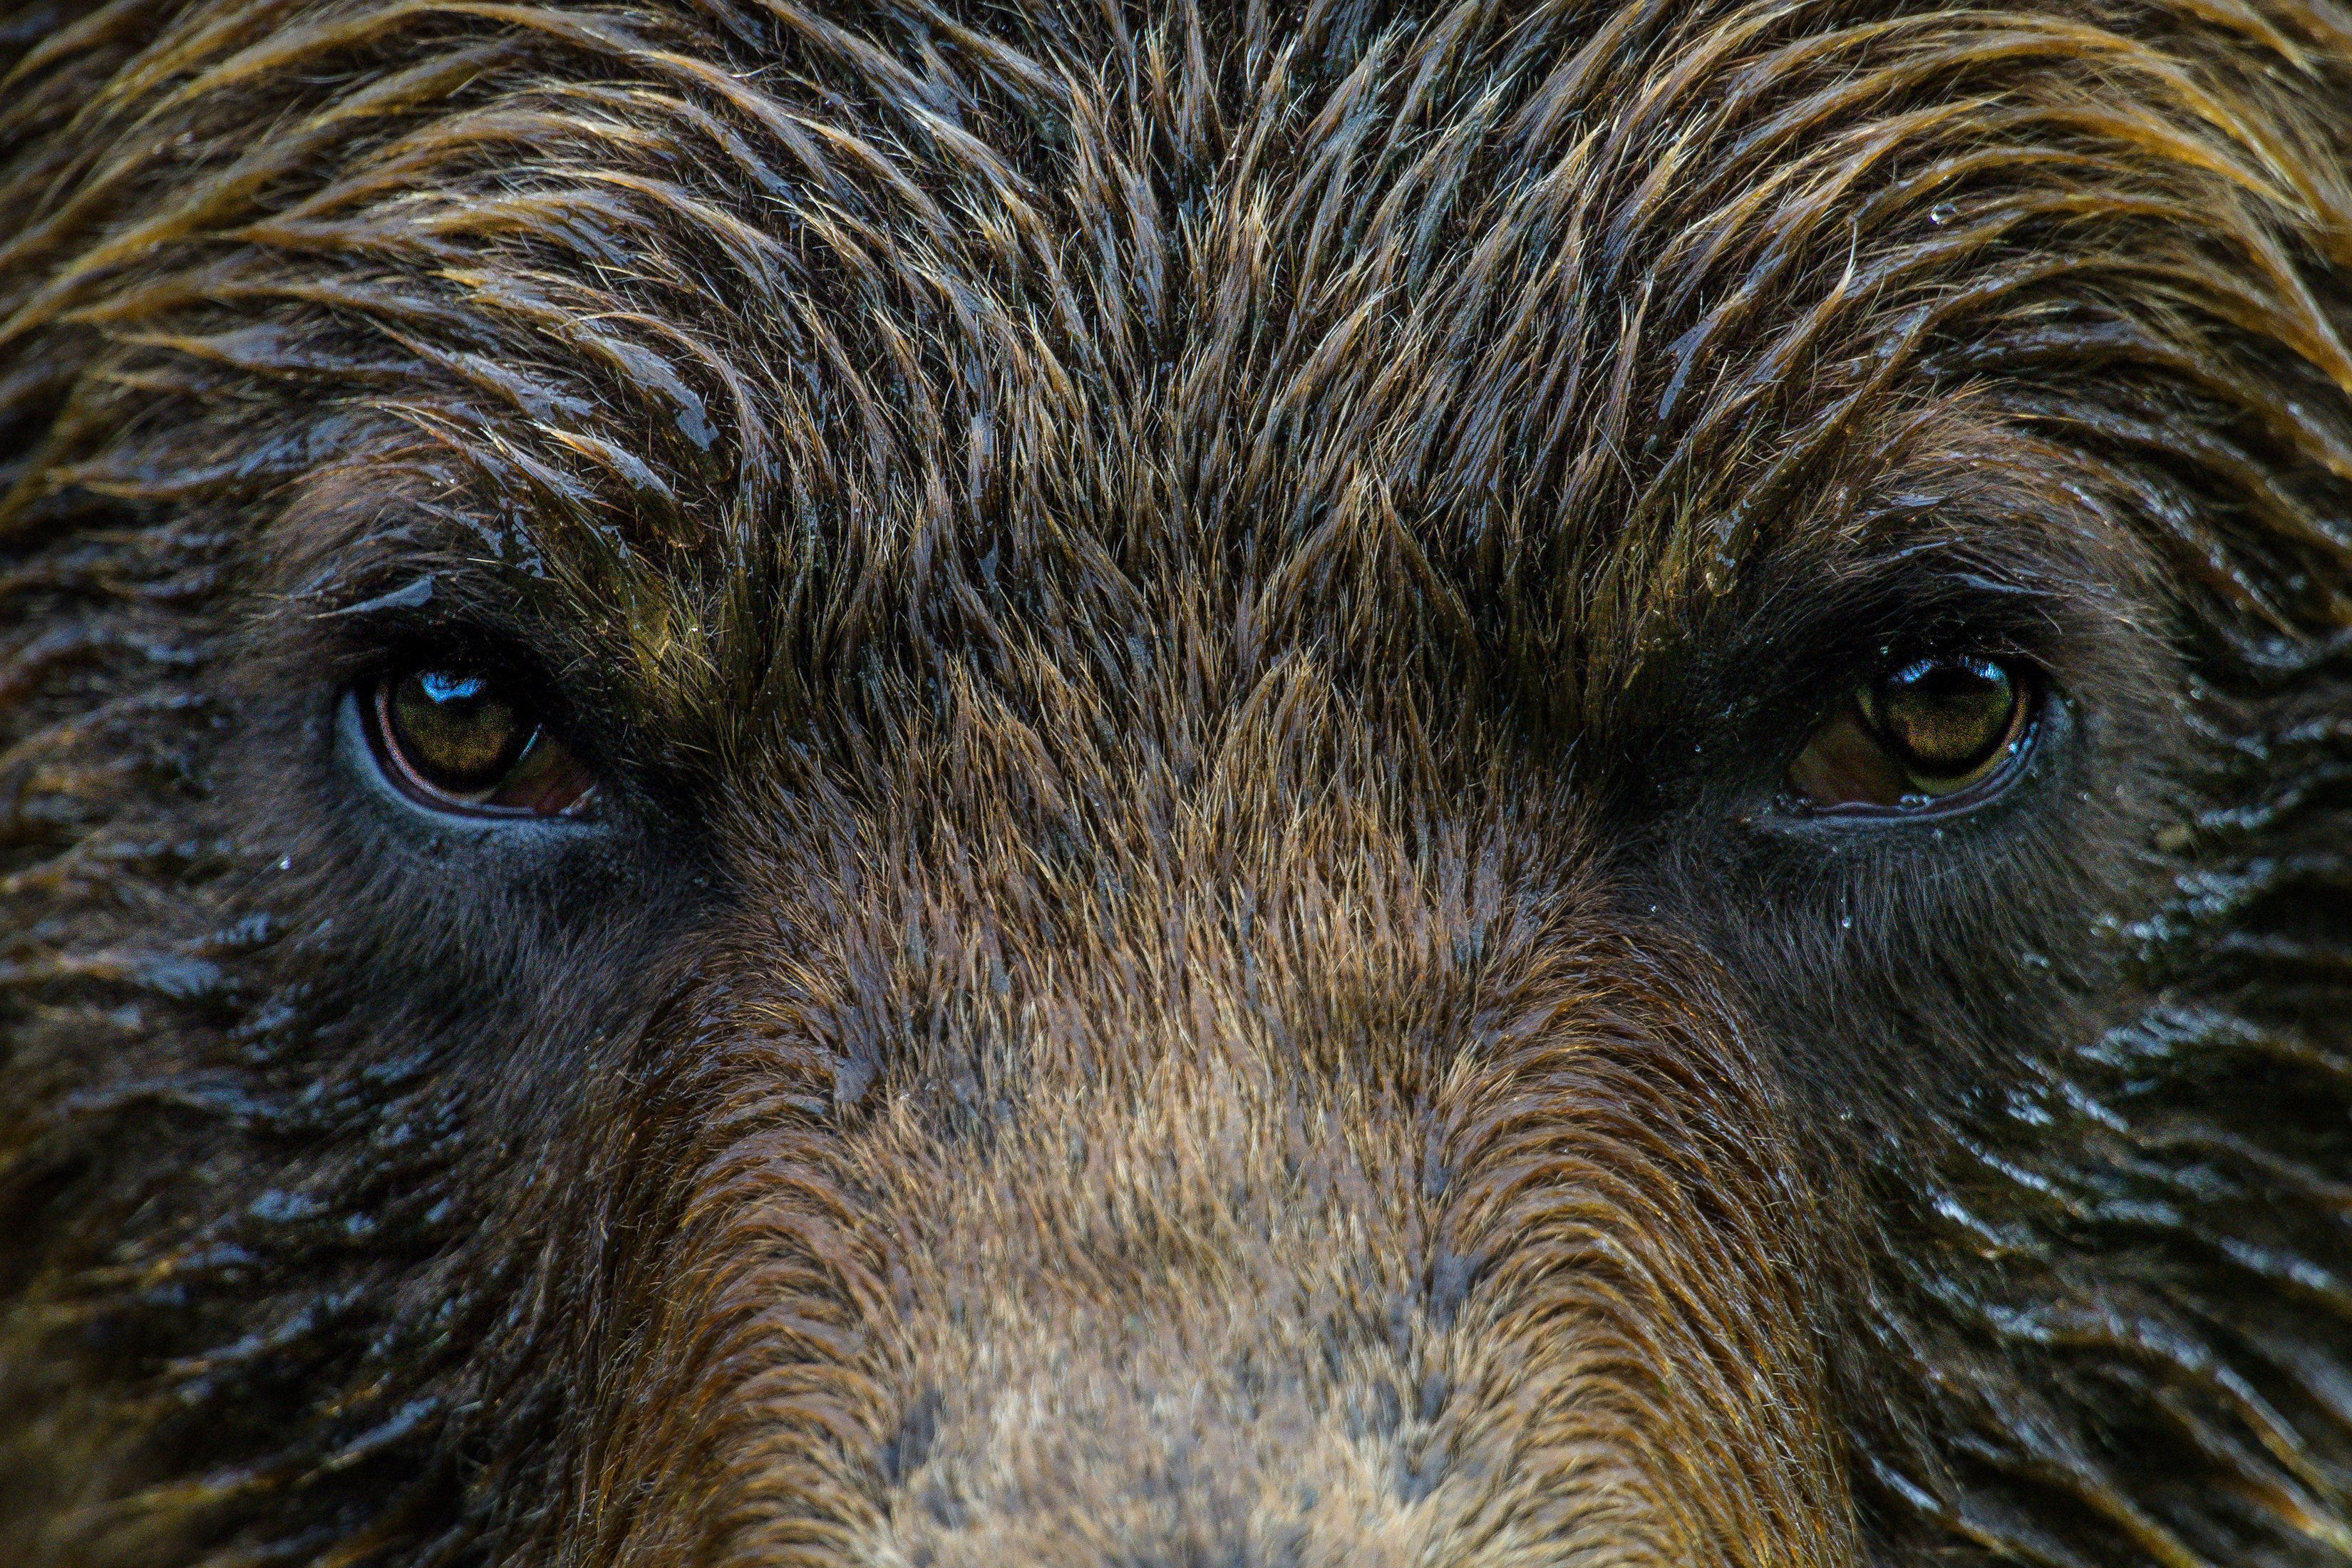 A grizzly bear in Canada's first and only grizzly bear sanctuary, the Khutzeymateen Provincial...